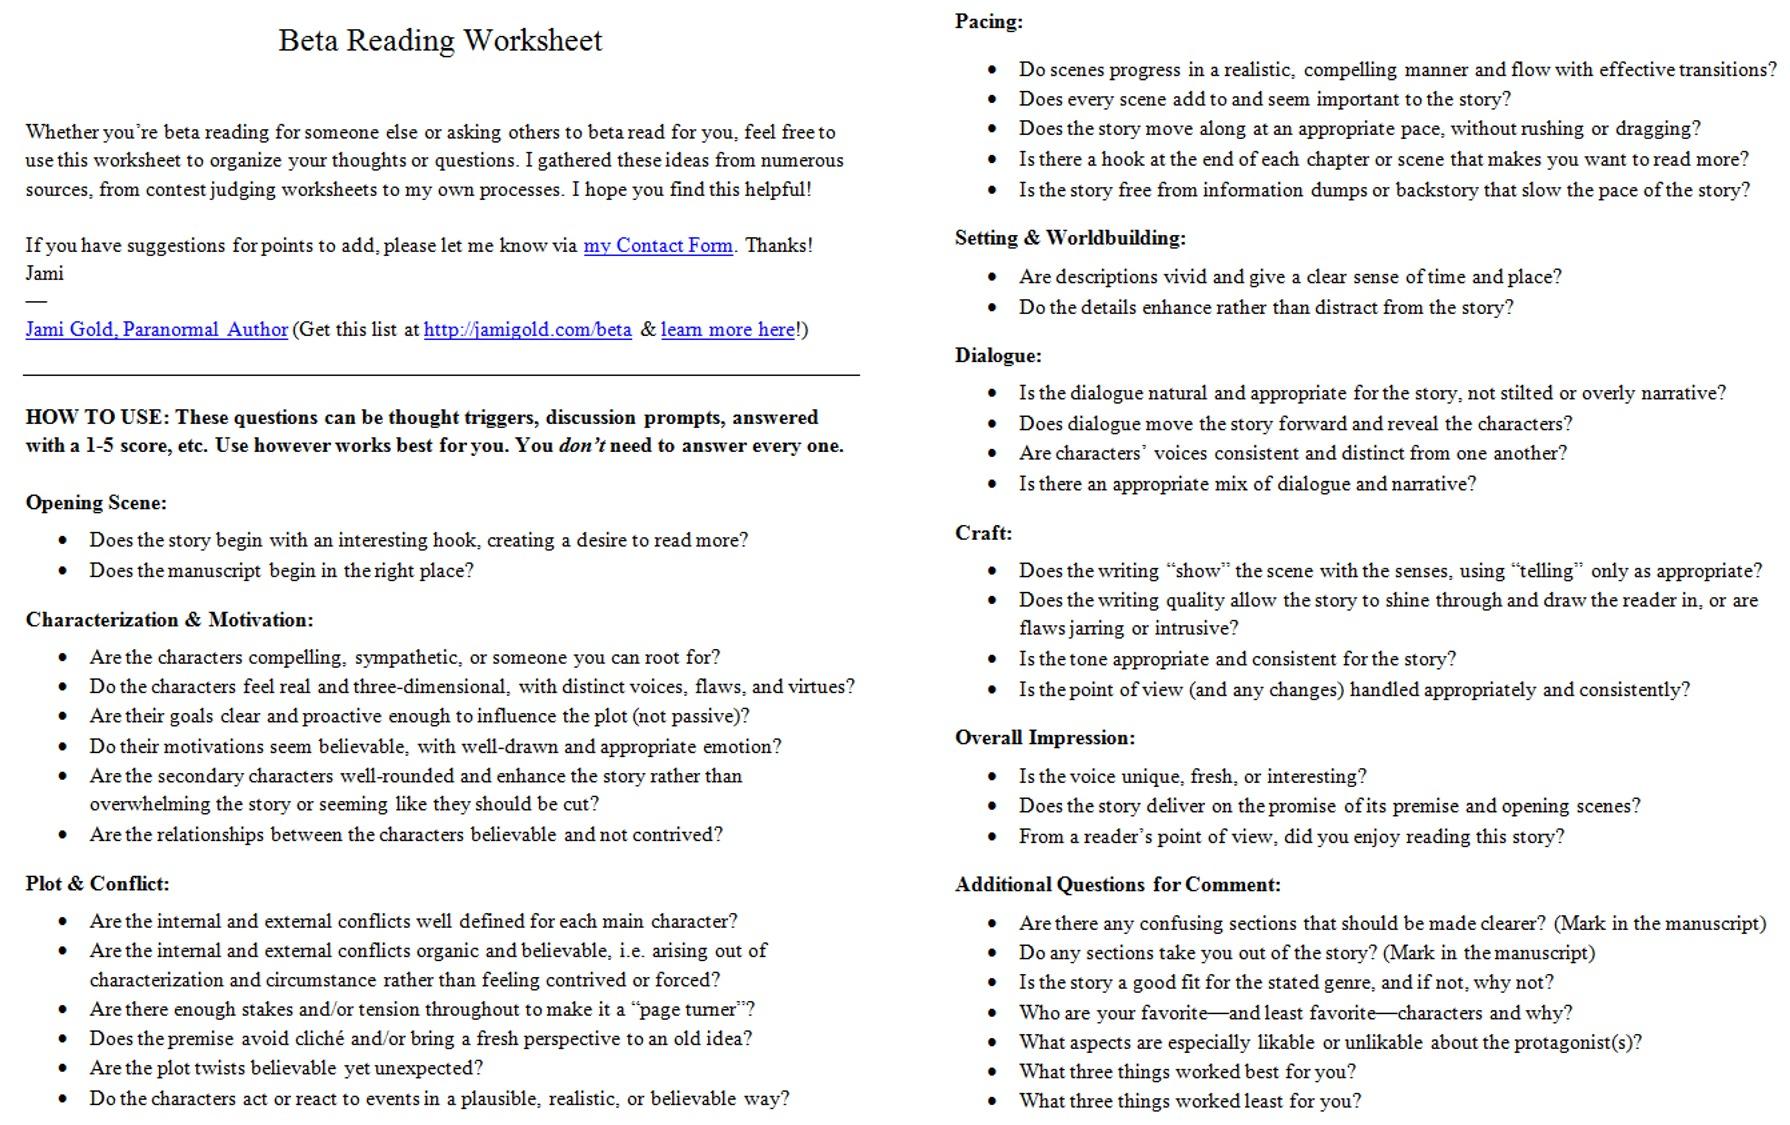 Proatmealus  Unique Worksheets For Writers  Jami Gold Paranormal Author With Excellent Screen Shot Of The Twopage Beta Reading Worksheet With Extraordinary Array Practice Worksheets Also Number  Worksheets Preschool In Addition Types Of Adverbs Worksheets And Finding Missing Angles In A Triangle Worksheet As Well As Online Math Worksheet Generator Additionally First Things First Covey Worksheet From Jamigoldcom With Proatmealus  Excellent Worksheets For Writers  Jami Gold Paranormal Author With Extraordinary Screen Shot Of The Twopage Beta Reading Worksheet And Unique Array Practice Worksheets Also Number  Worksheets Preschool In Addition Types Of Adverbs Worksheets From Jamigoldcom